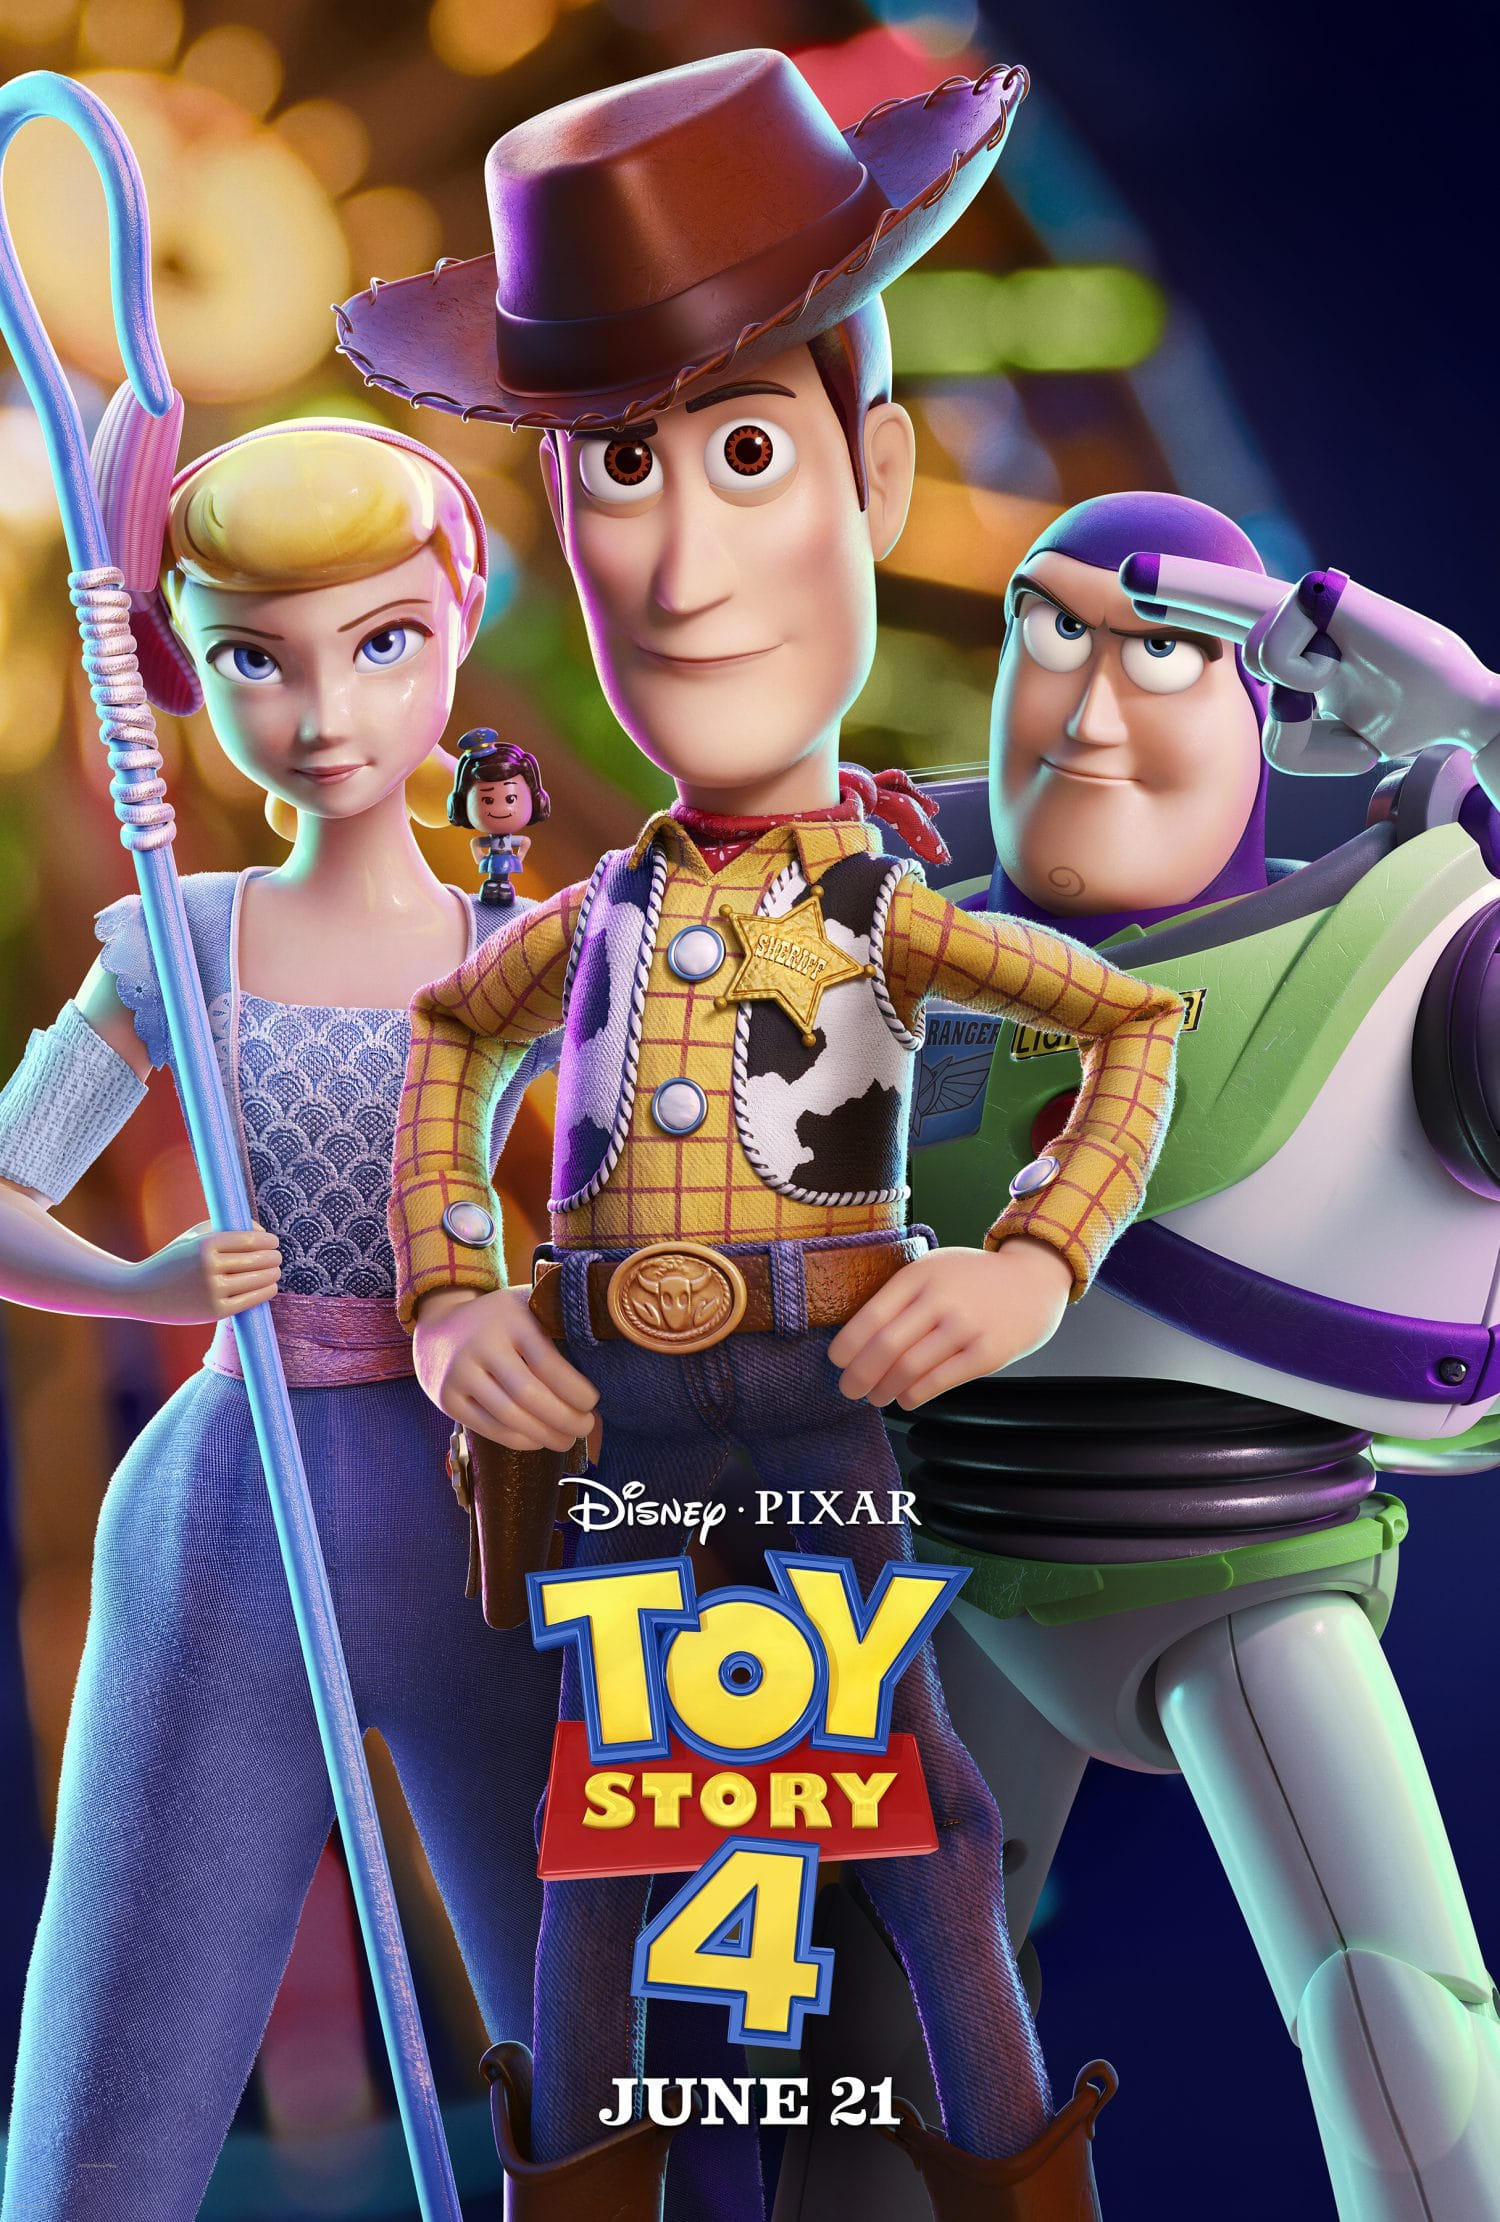 Take a look at the new Toy Story 4 movie poster.